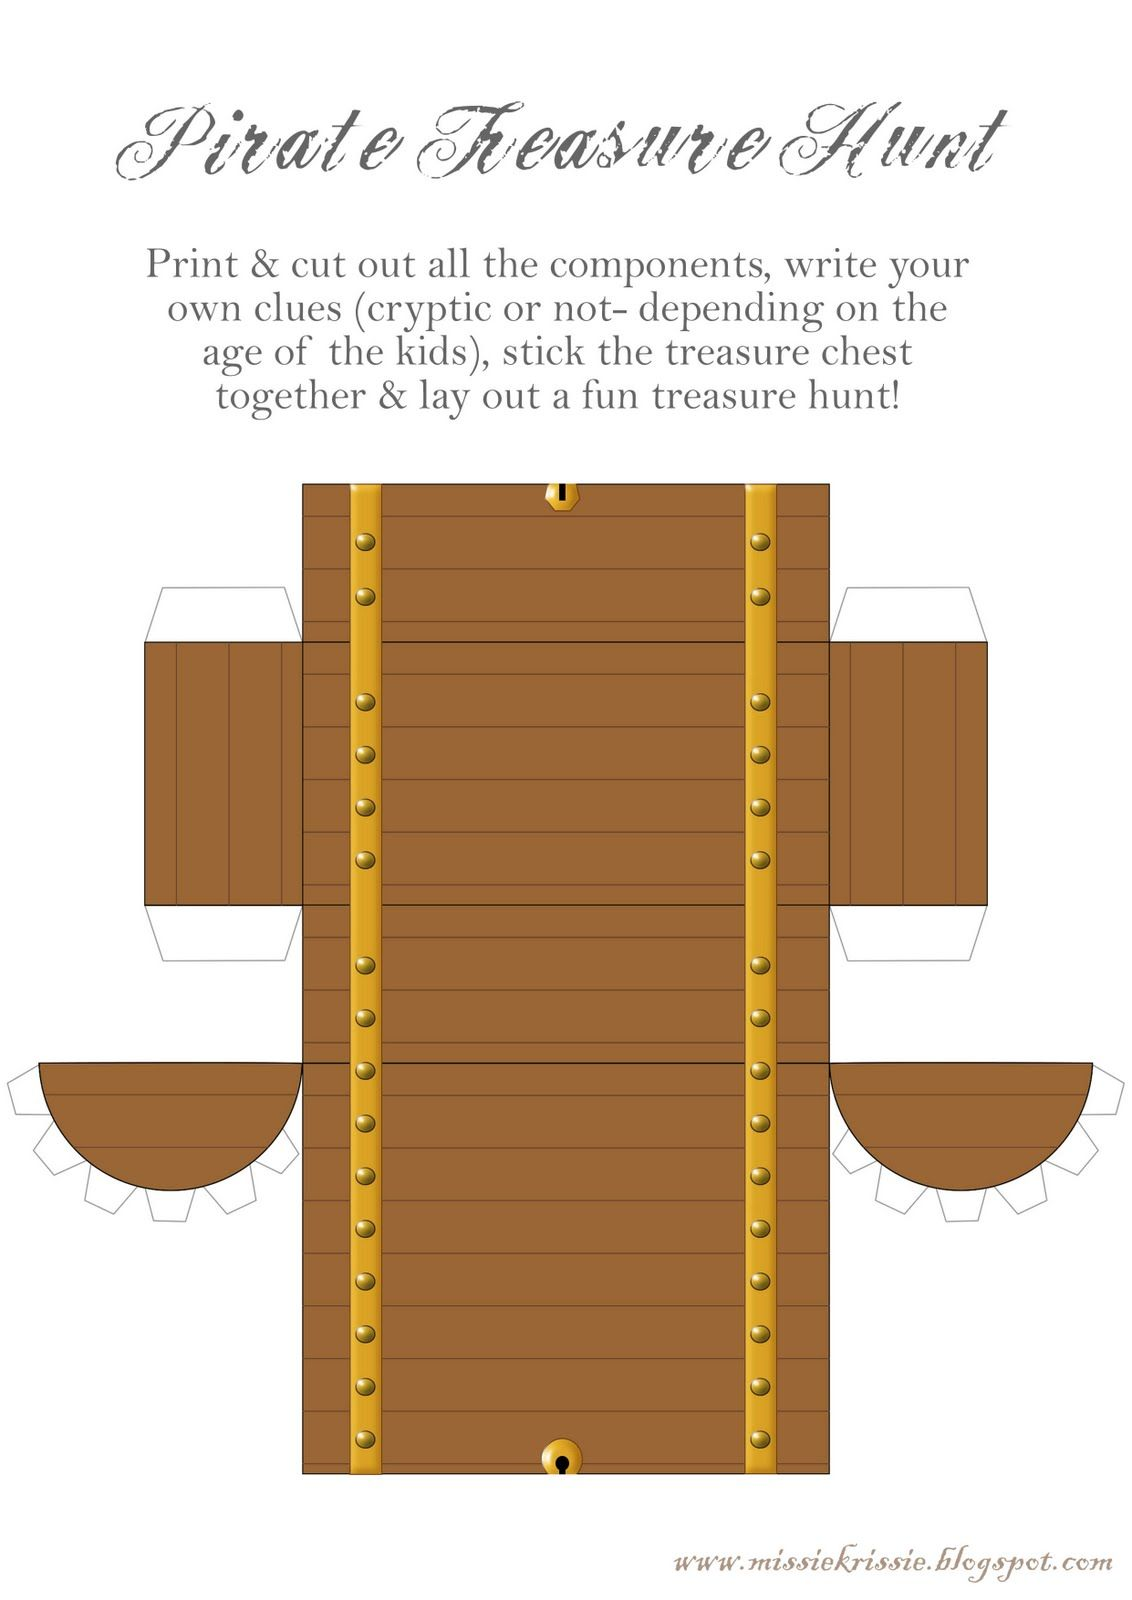 great freebies images to print for a pirate treasure hunt